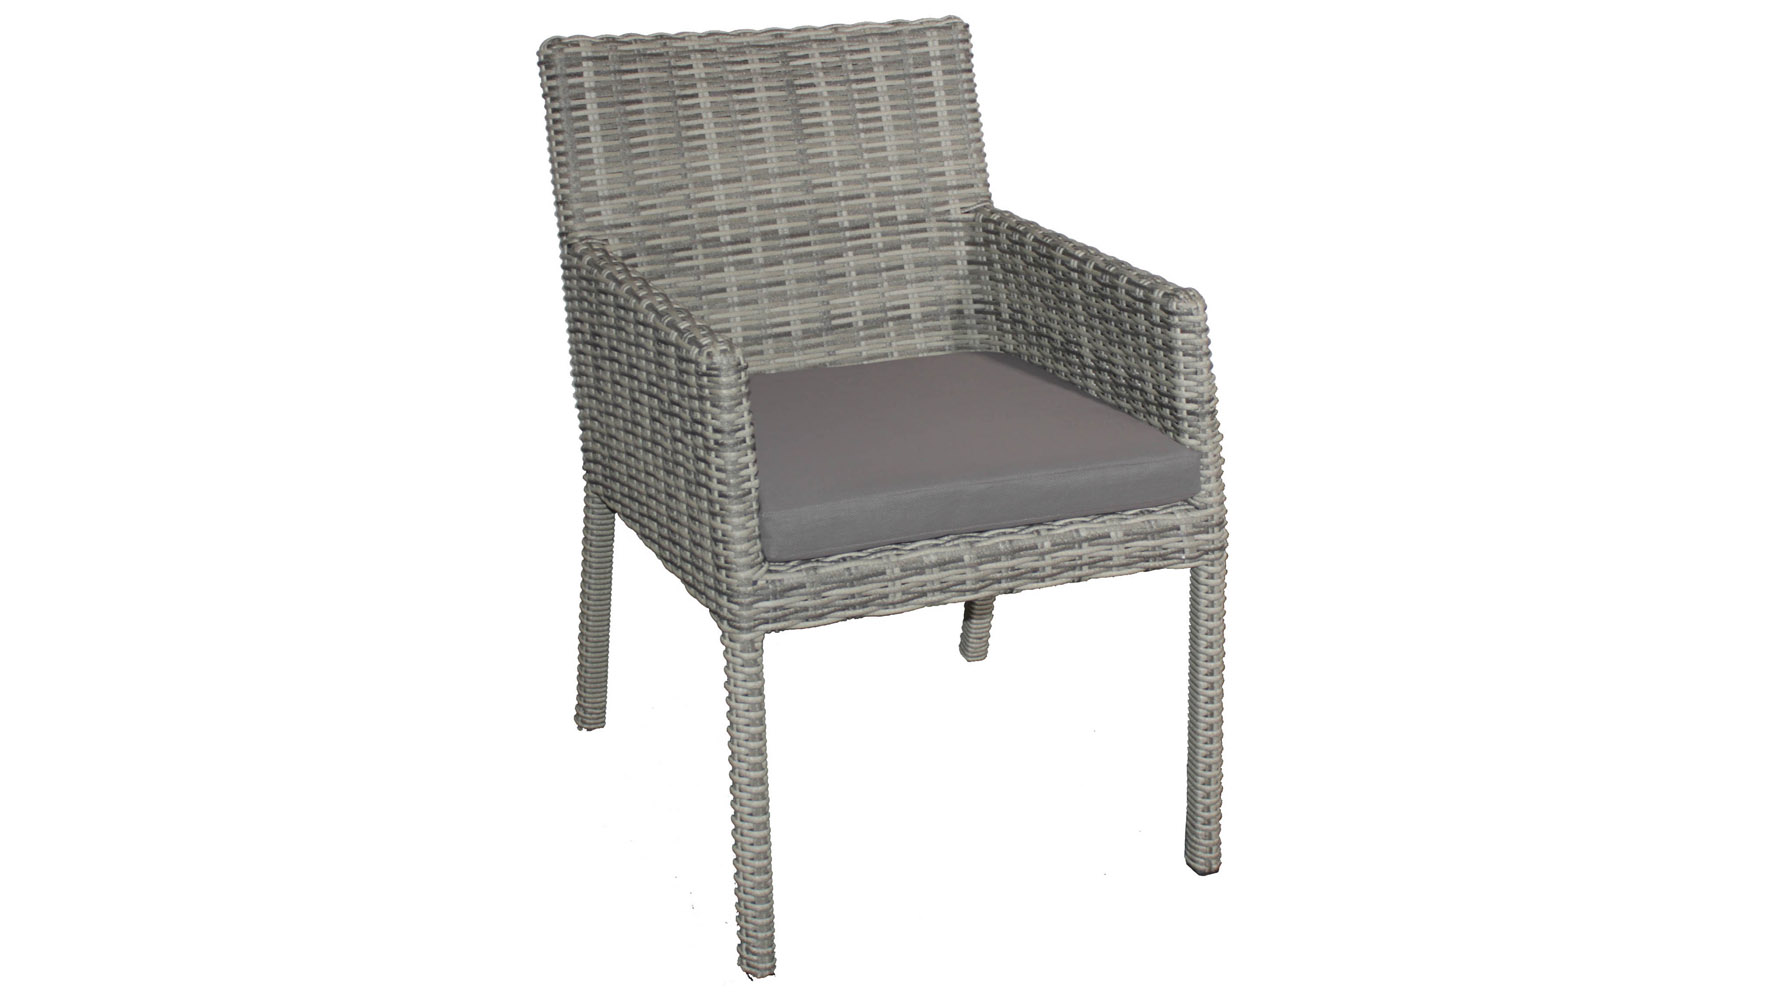 Greywash Rattan Allegra Outdoor Dining Set With Grey Cushions | Zuri  Furniture